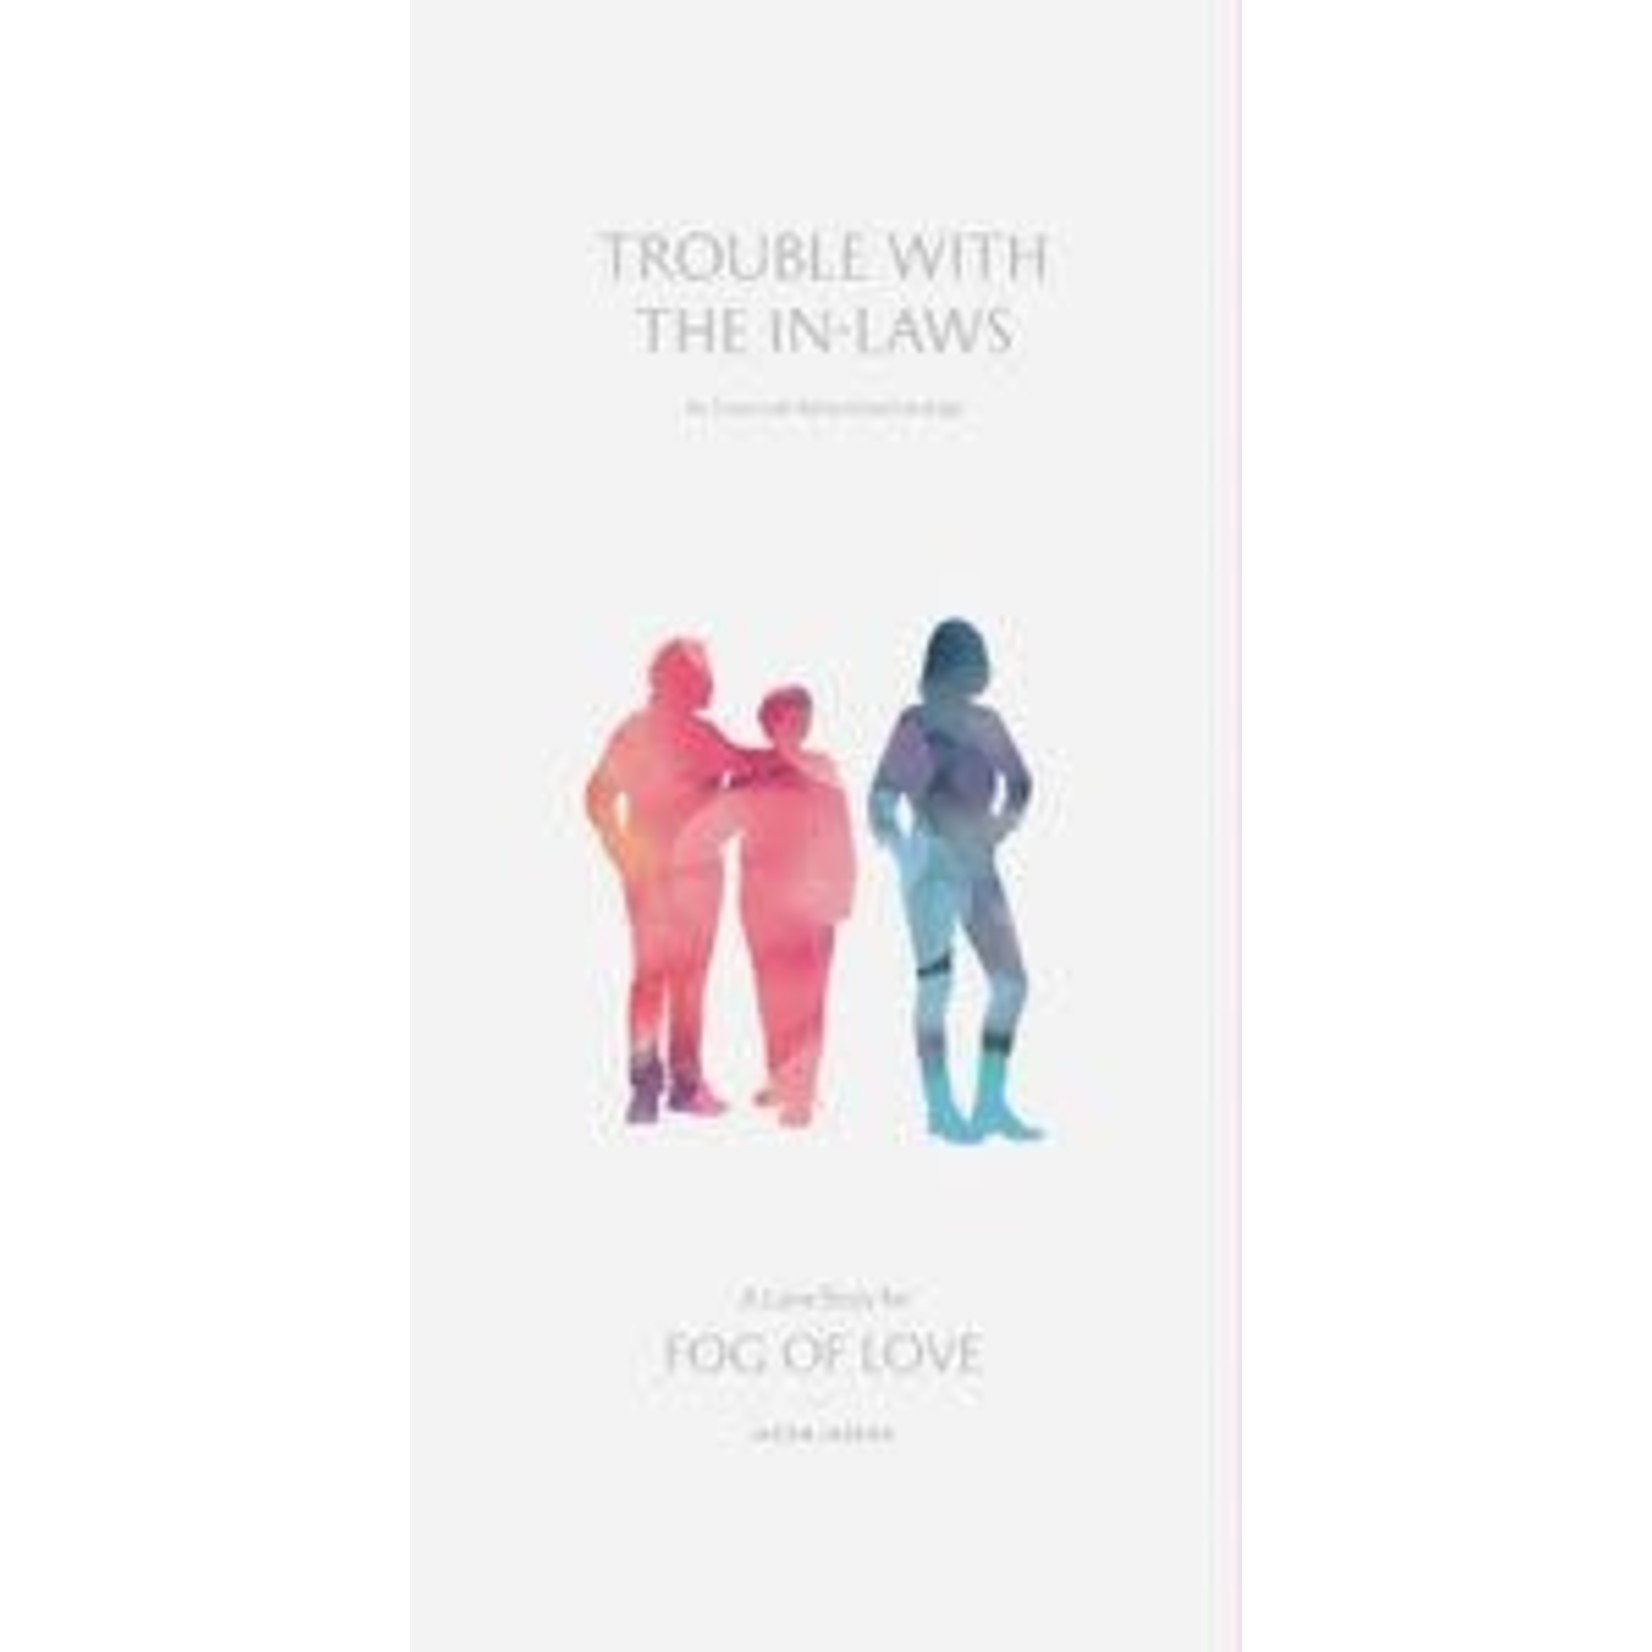 Fog of Love: Trouble with the In-laws Expansion